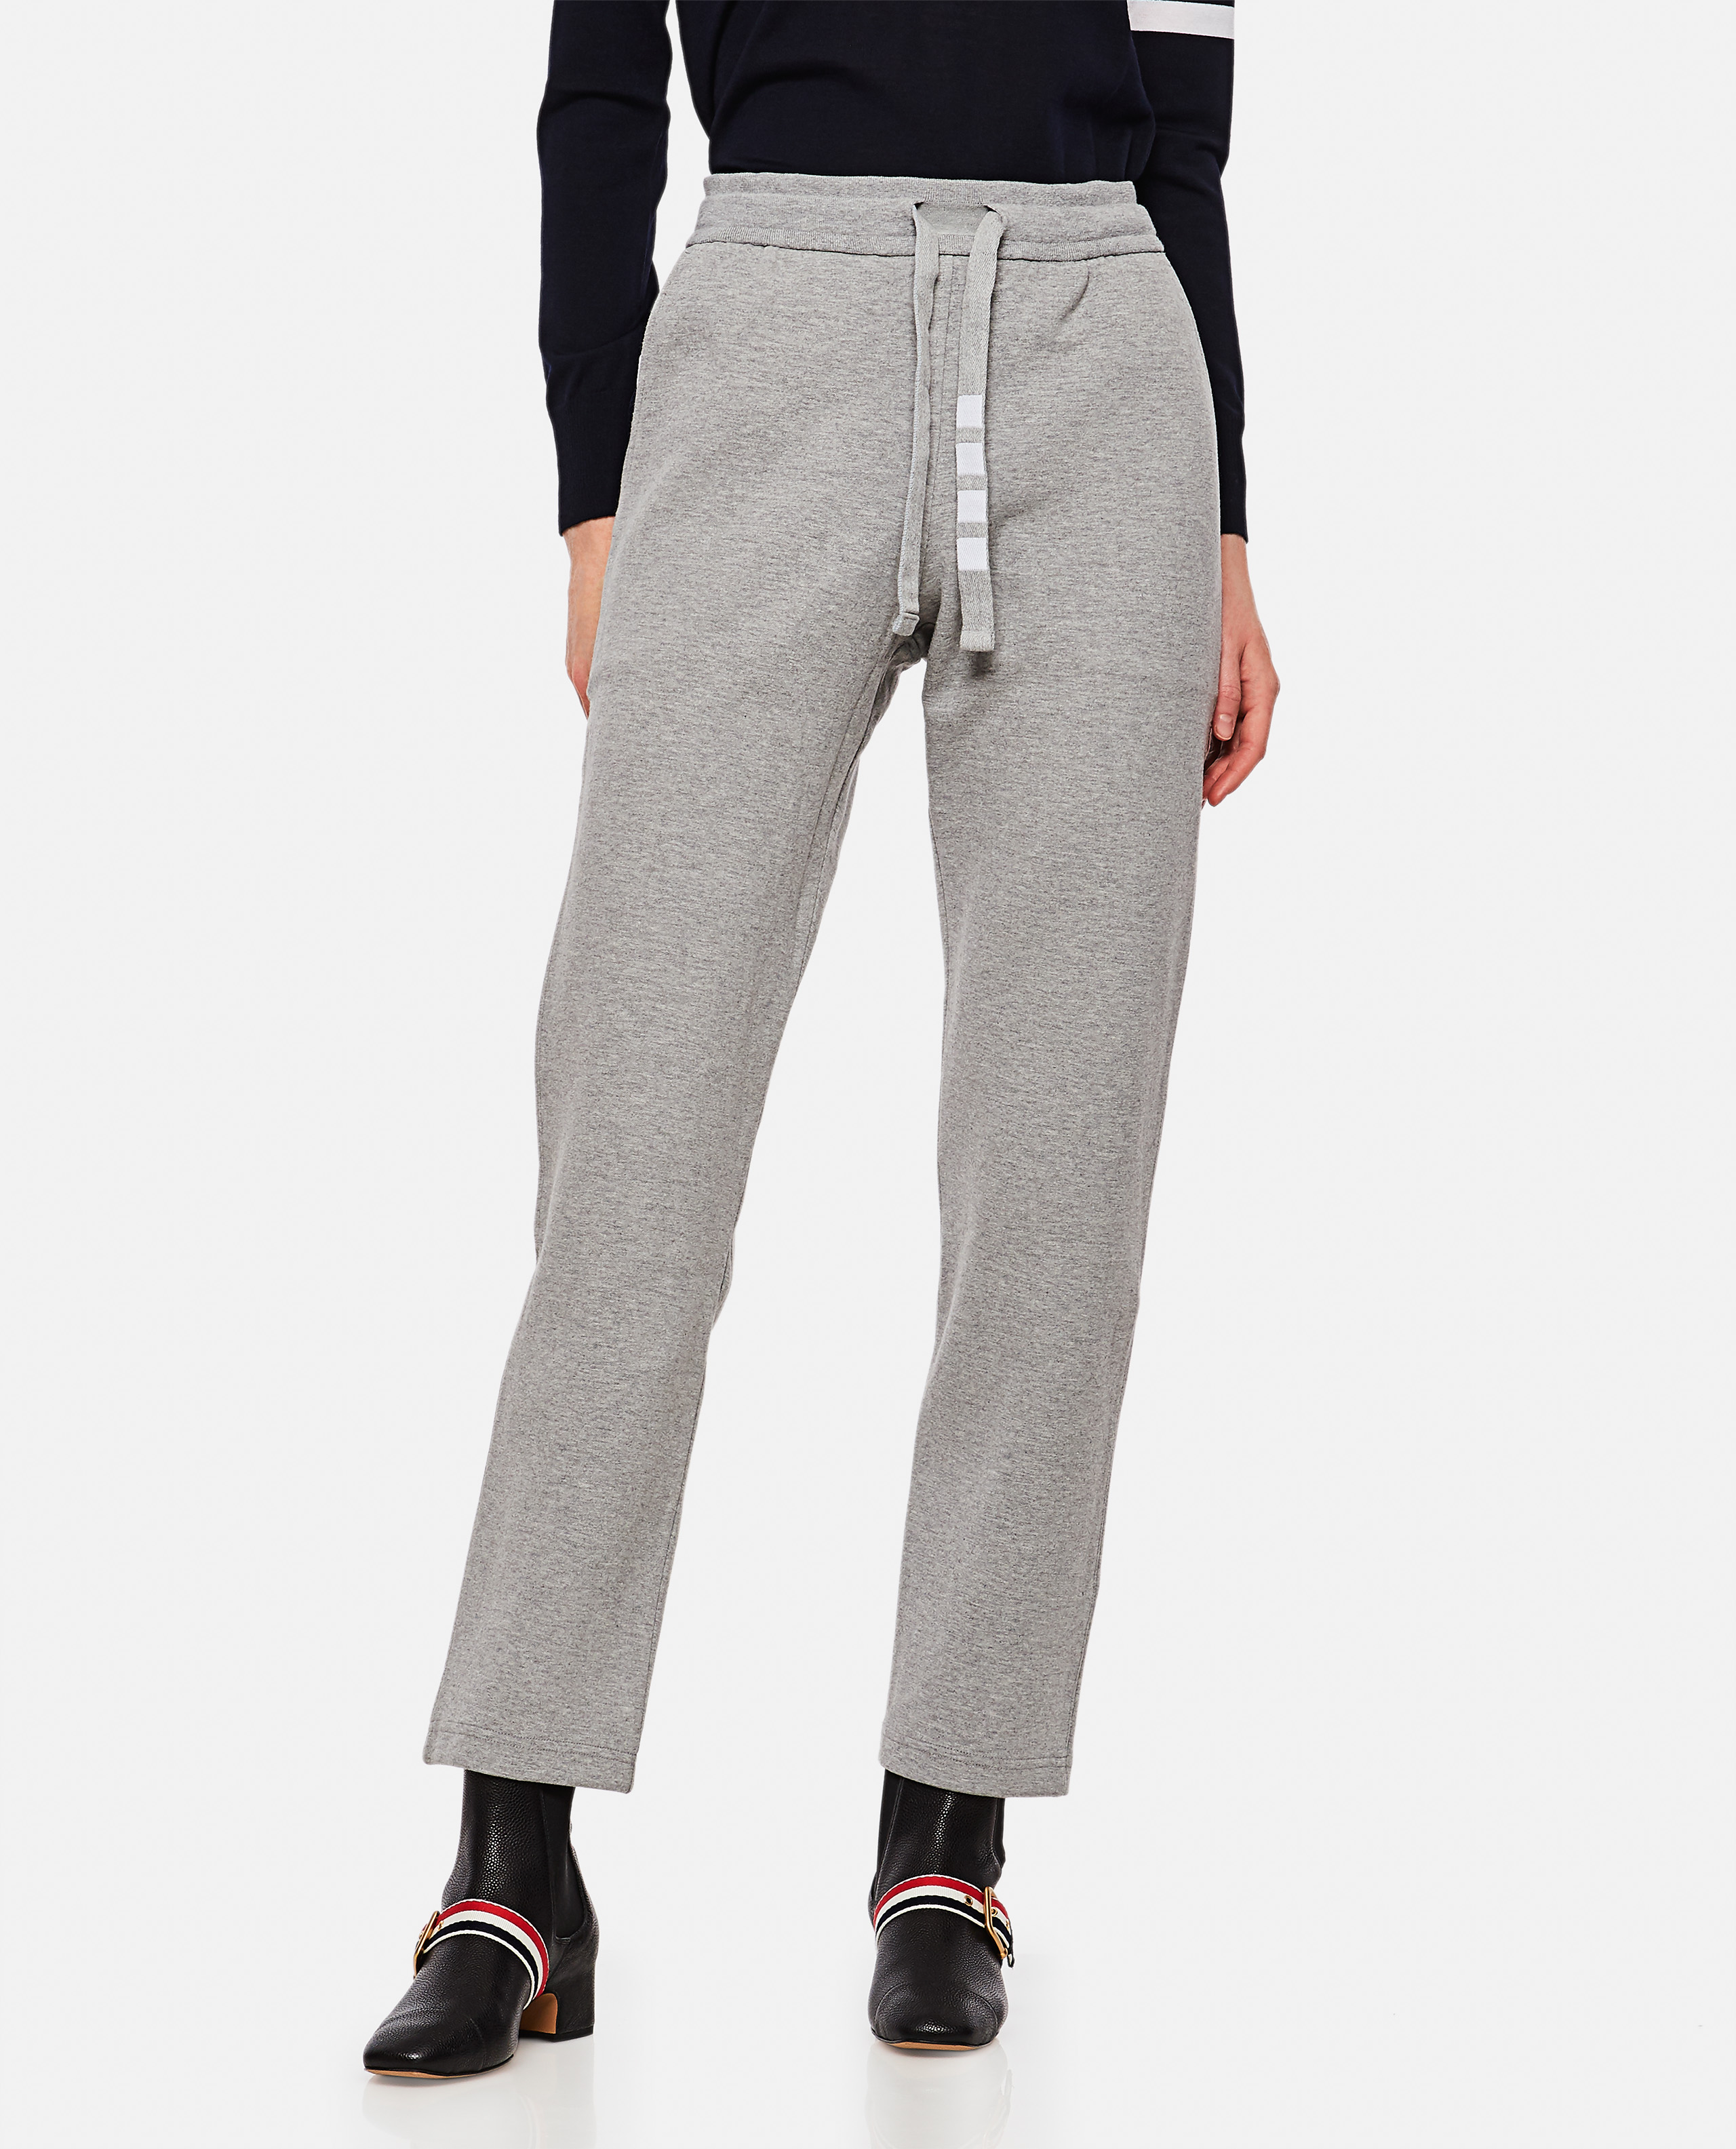 Thom Browne Sport Trousers In Grey